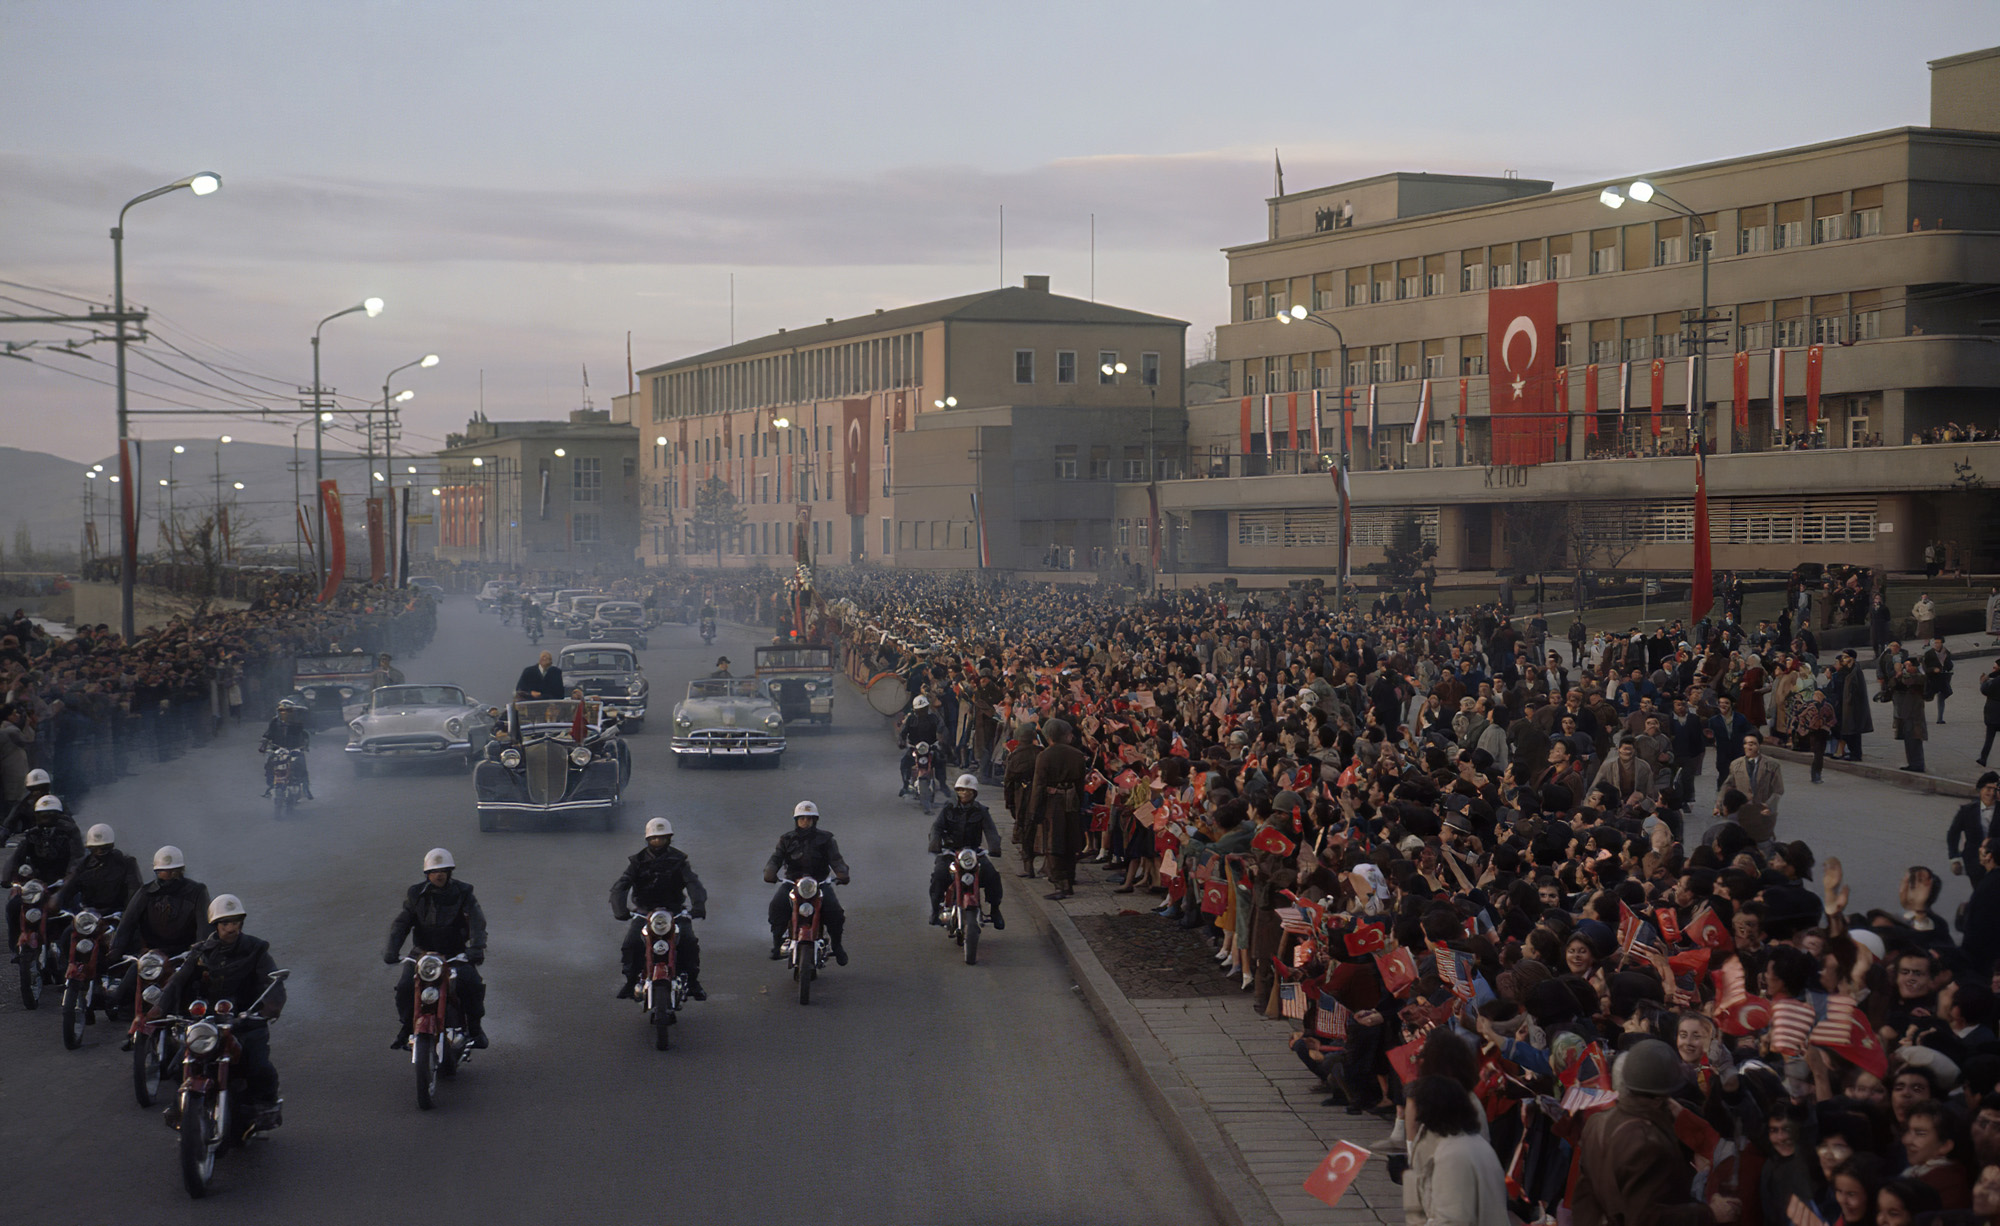 1960 Ankara. A crowd of spectators turns up to watch Eisenhower's motorcade. Grosvenor_cmpk